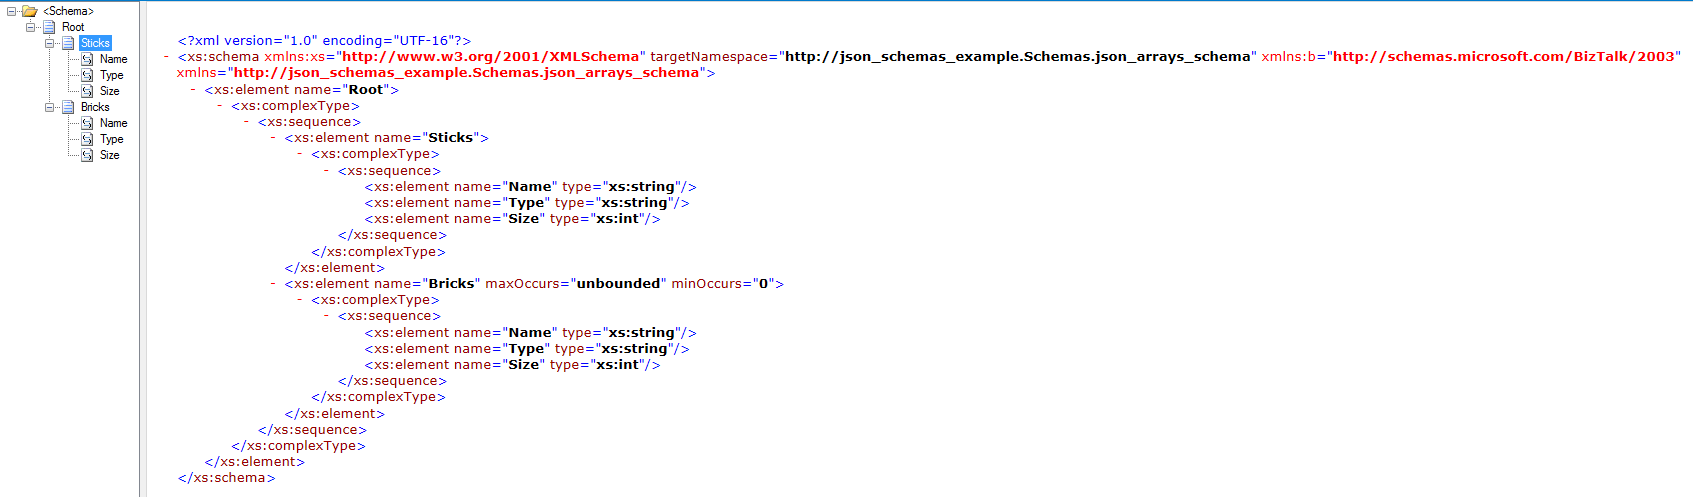 Experimenting with BizTalk's XML to JSON conversion - juharyhanen com